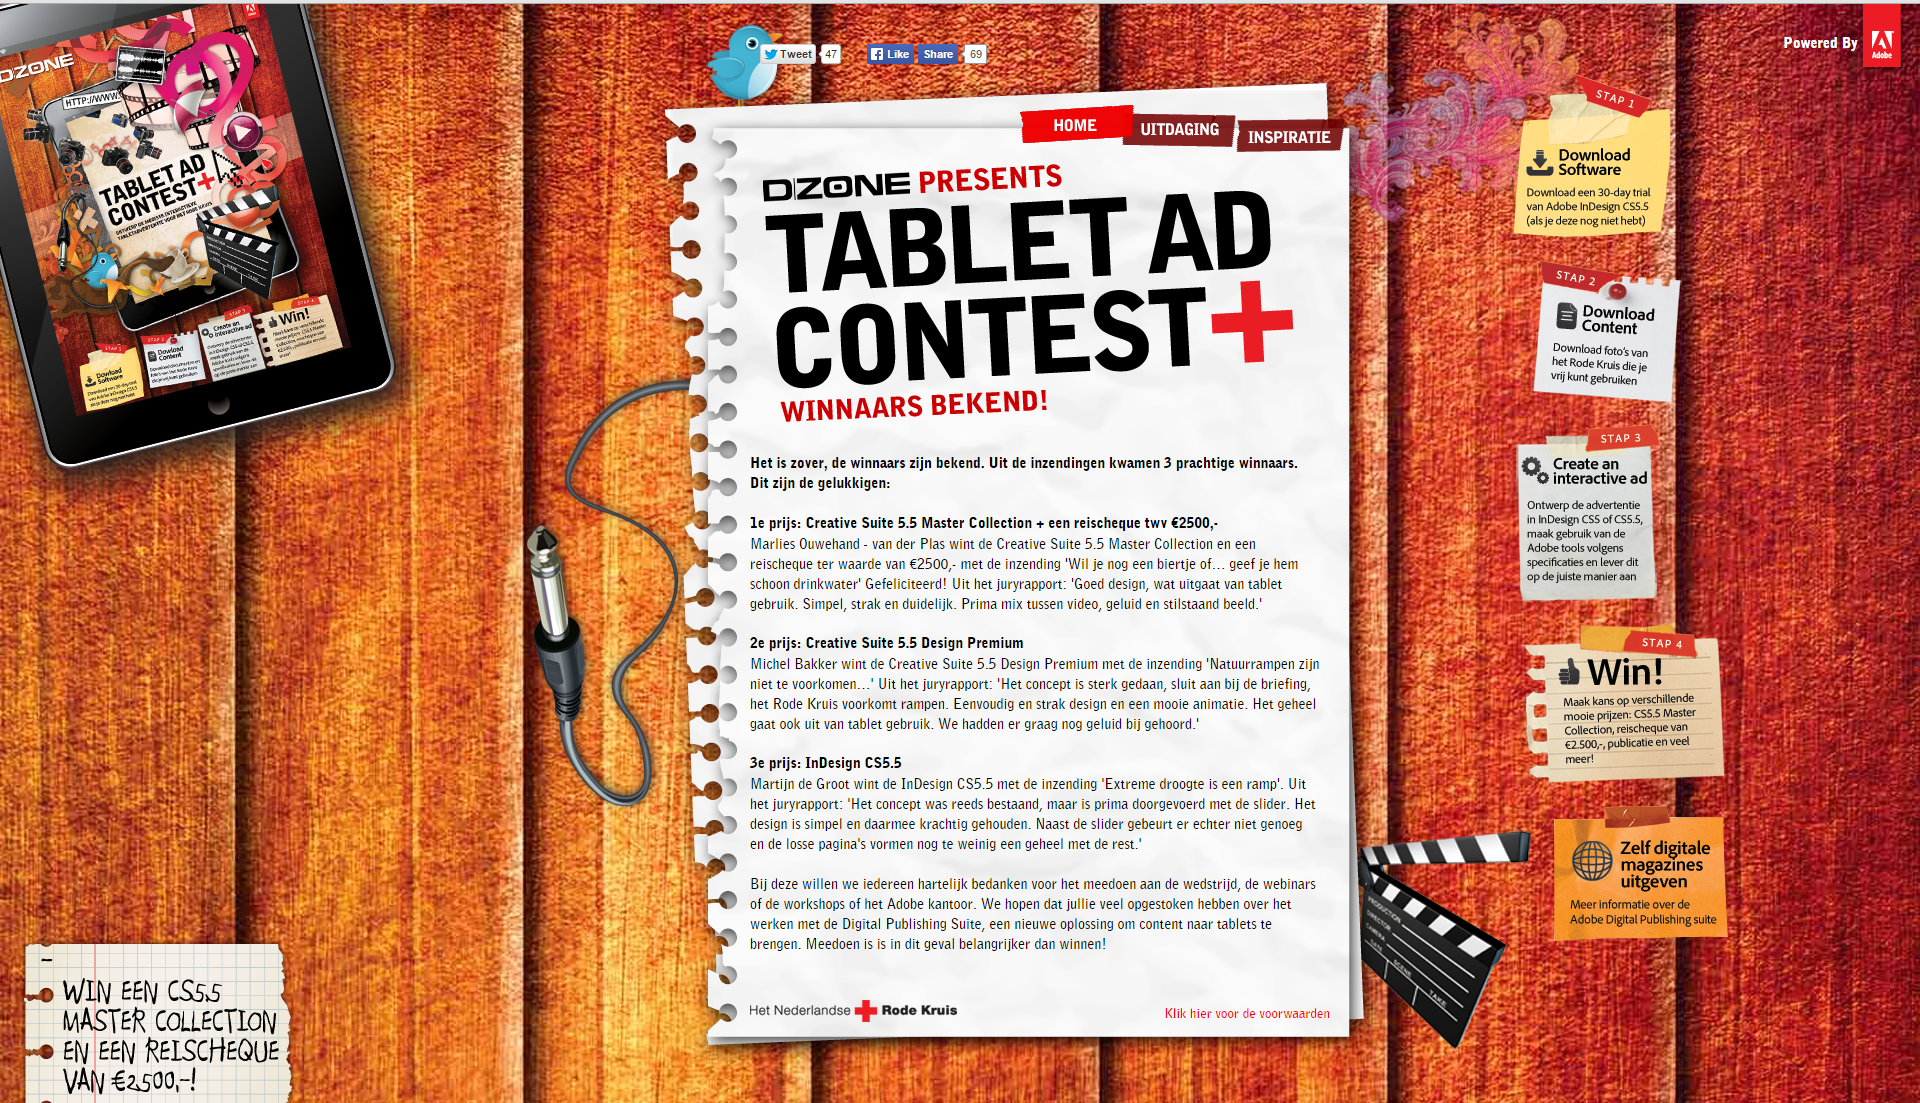 Homepagina van Adobe Tablet Ad Contest.